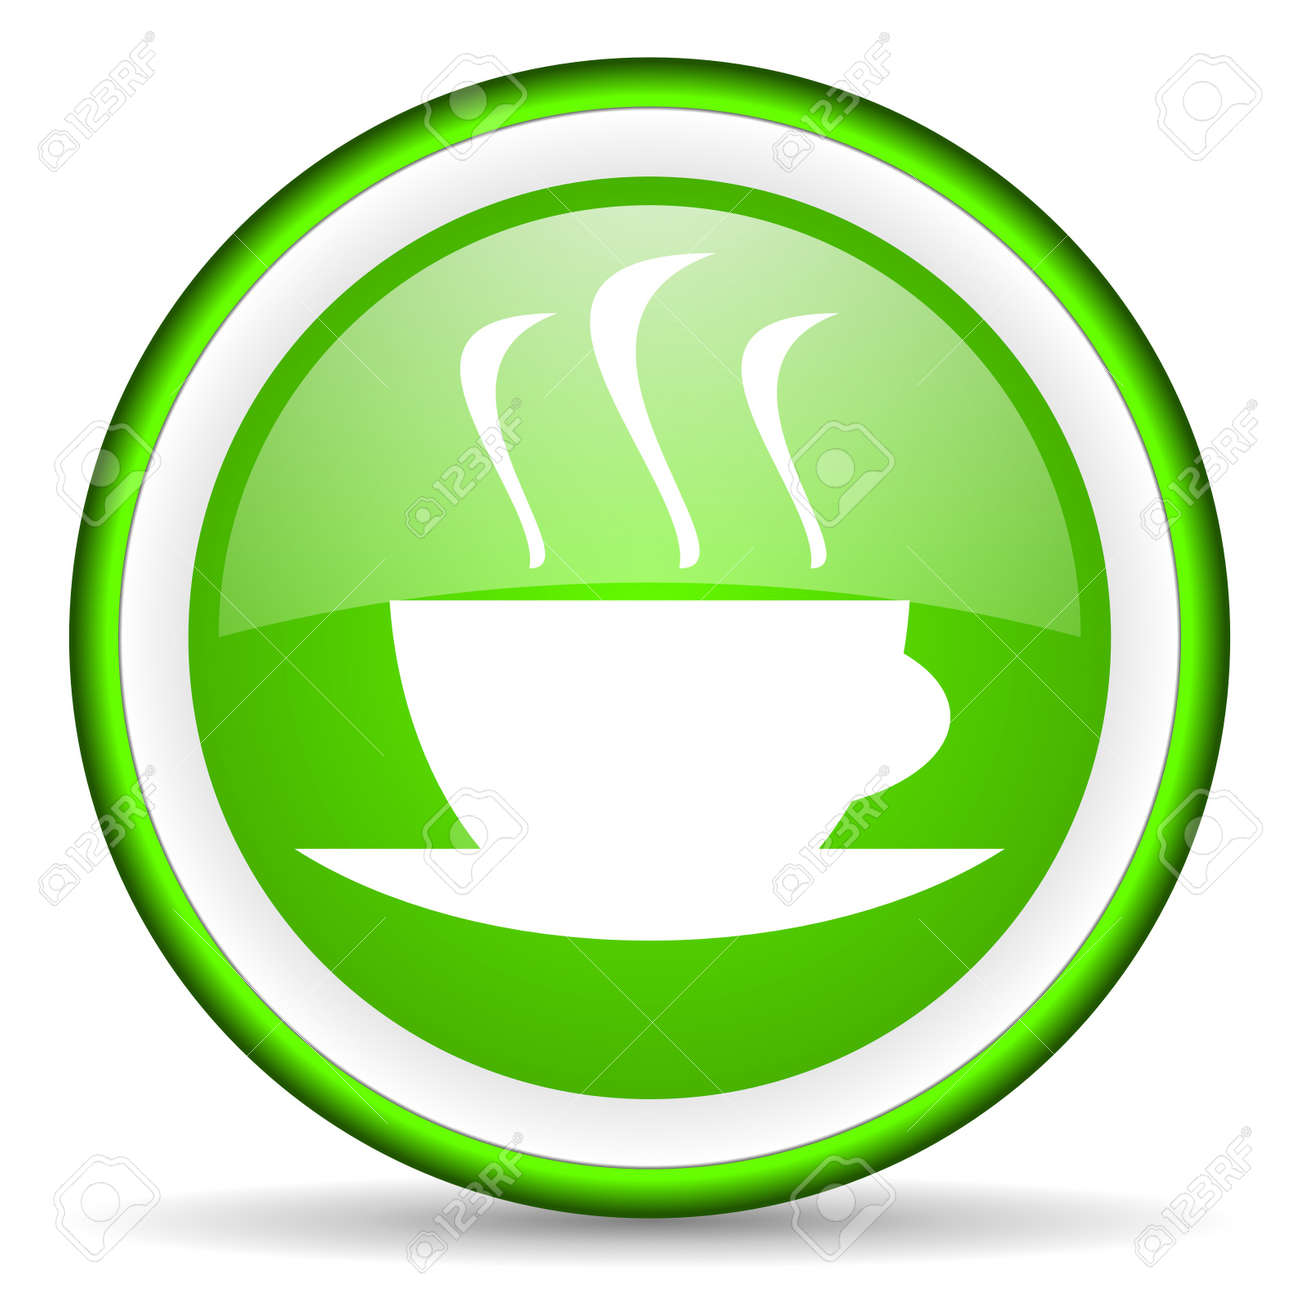 coffee green glossy icon on white background Stock Photo - 17065720